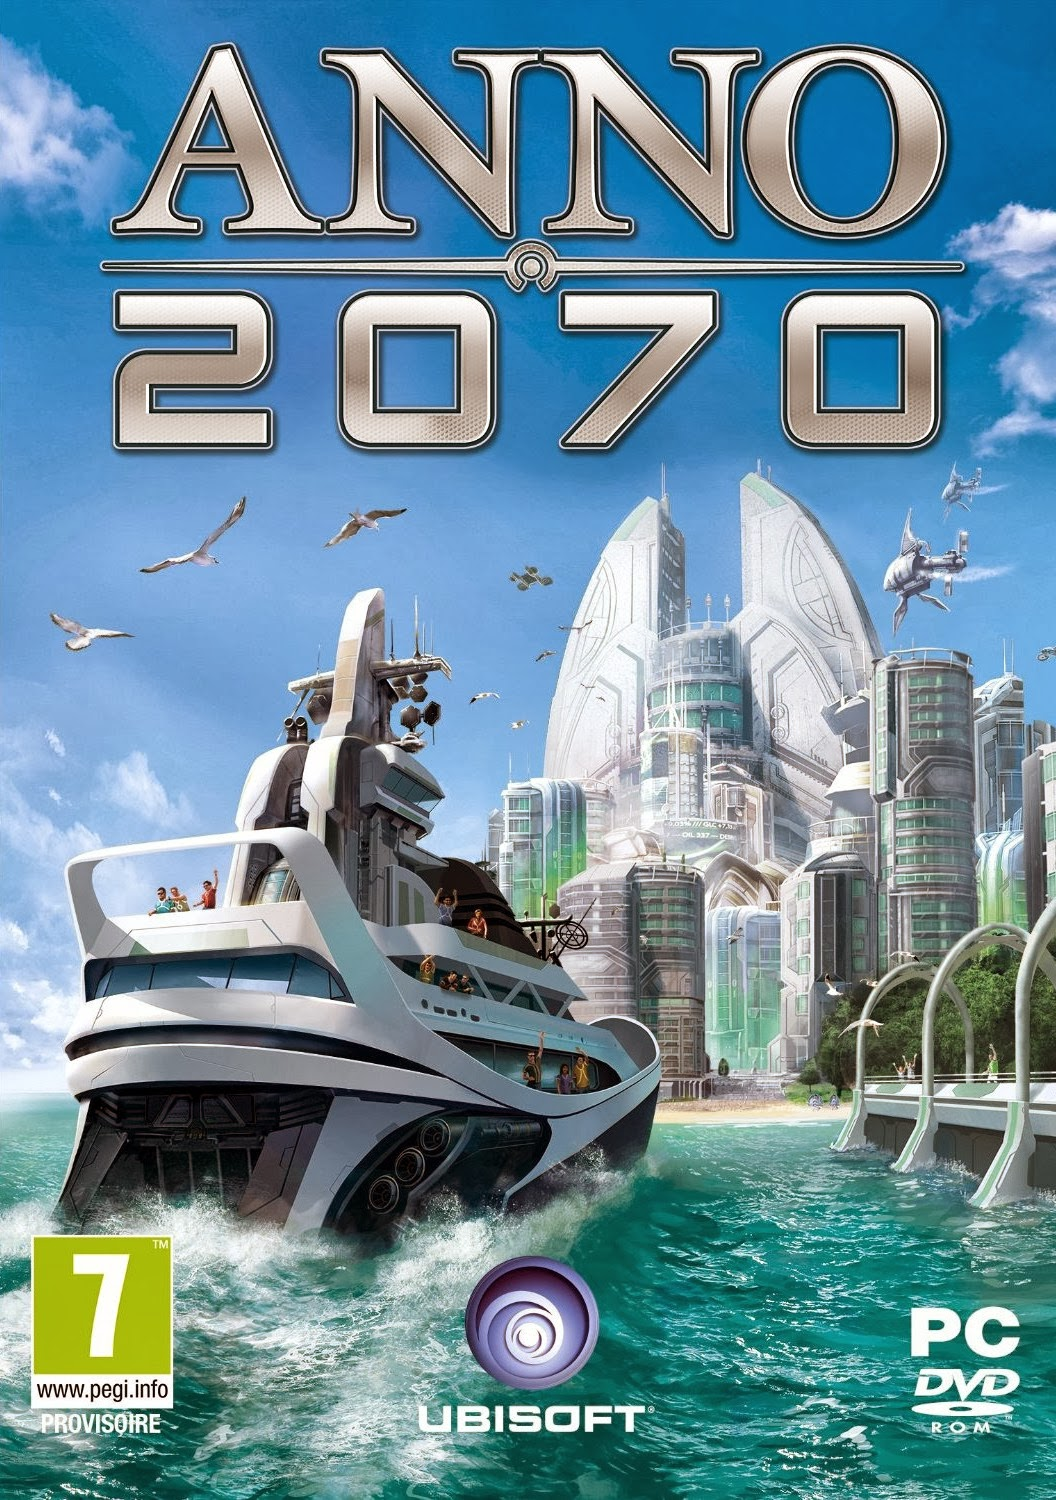 A Game For Free : Anno pc game free download full version qasi softwares